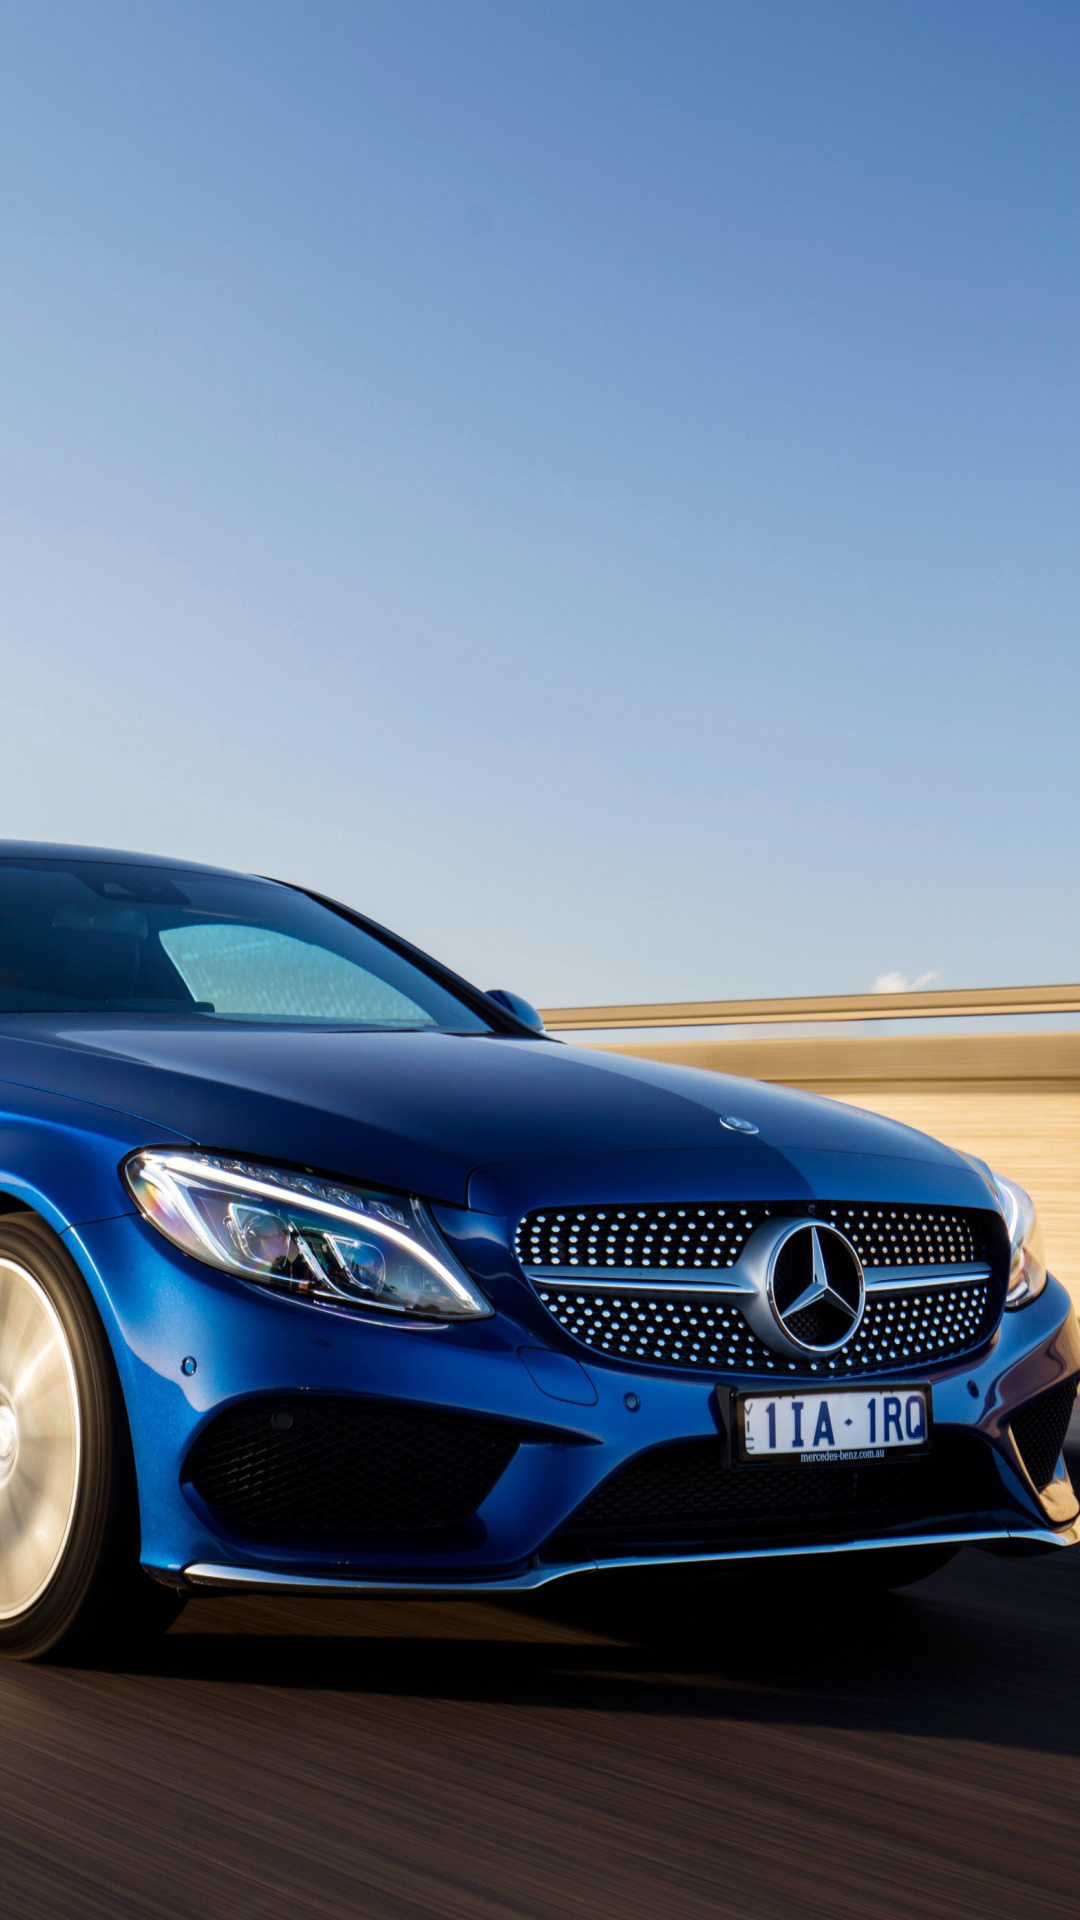 Mercedes Benz C Class Coupe W21 Wallpaper for iPhone 21 Plus